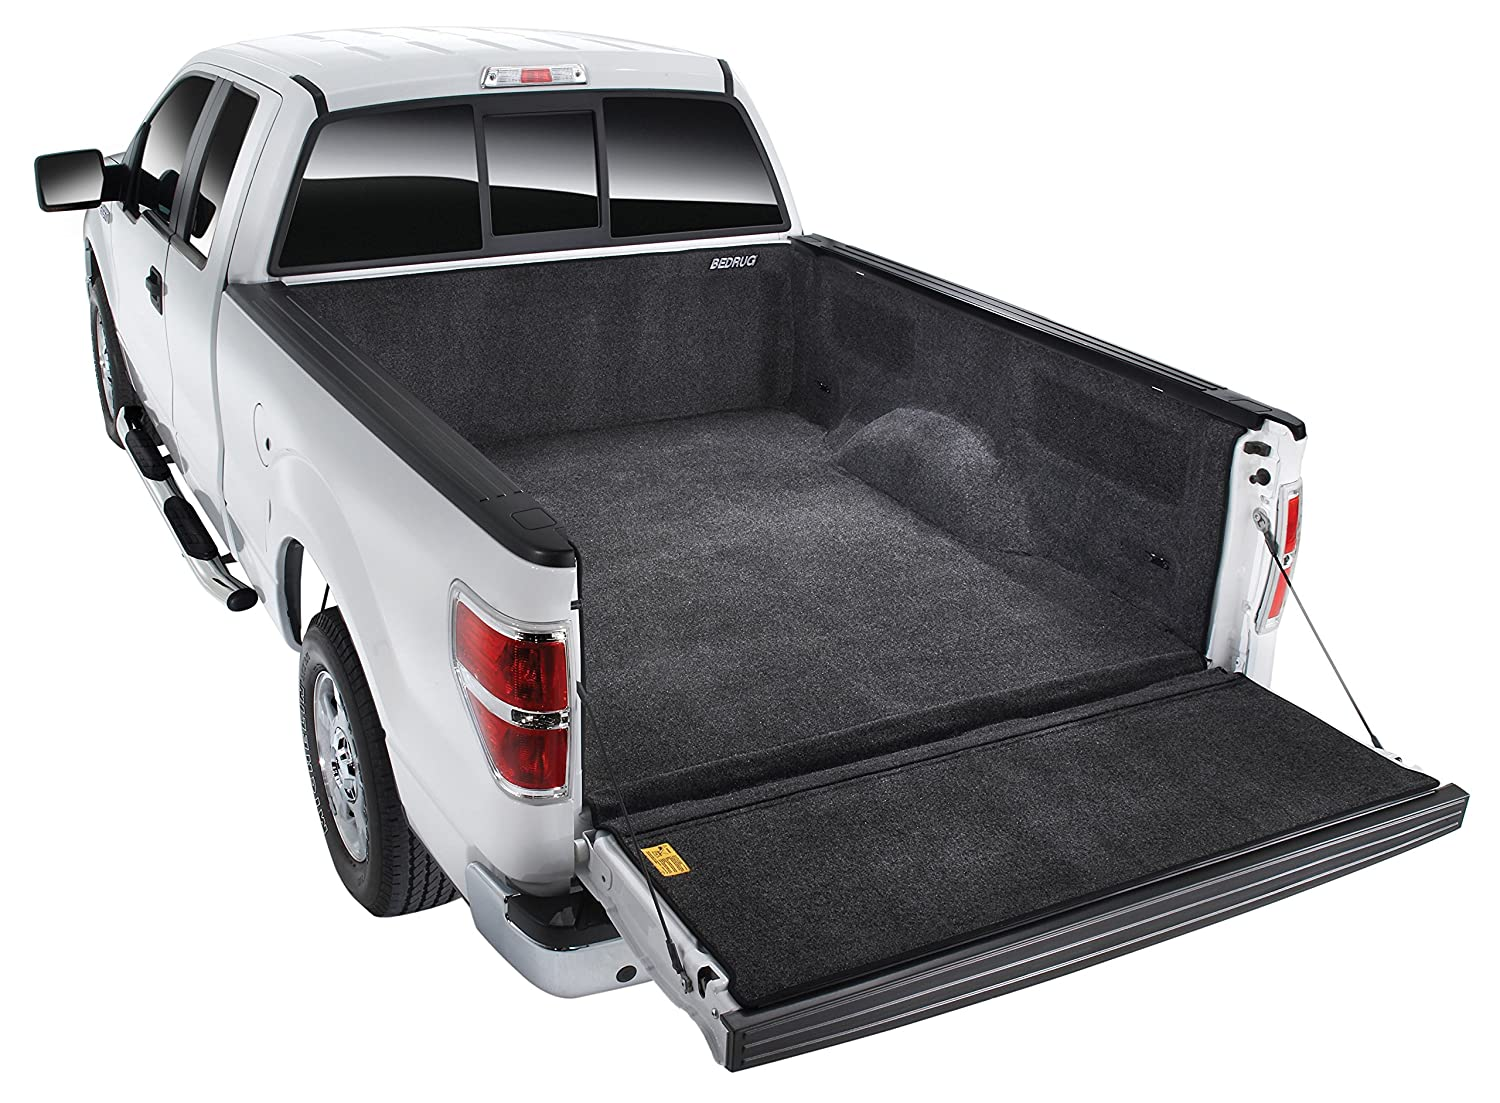 Bedrug BMY07SBD 5 6 Bed Mat for use with Existing Drop-in Bed Liner